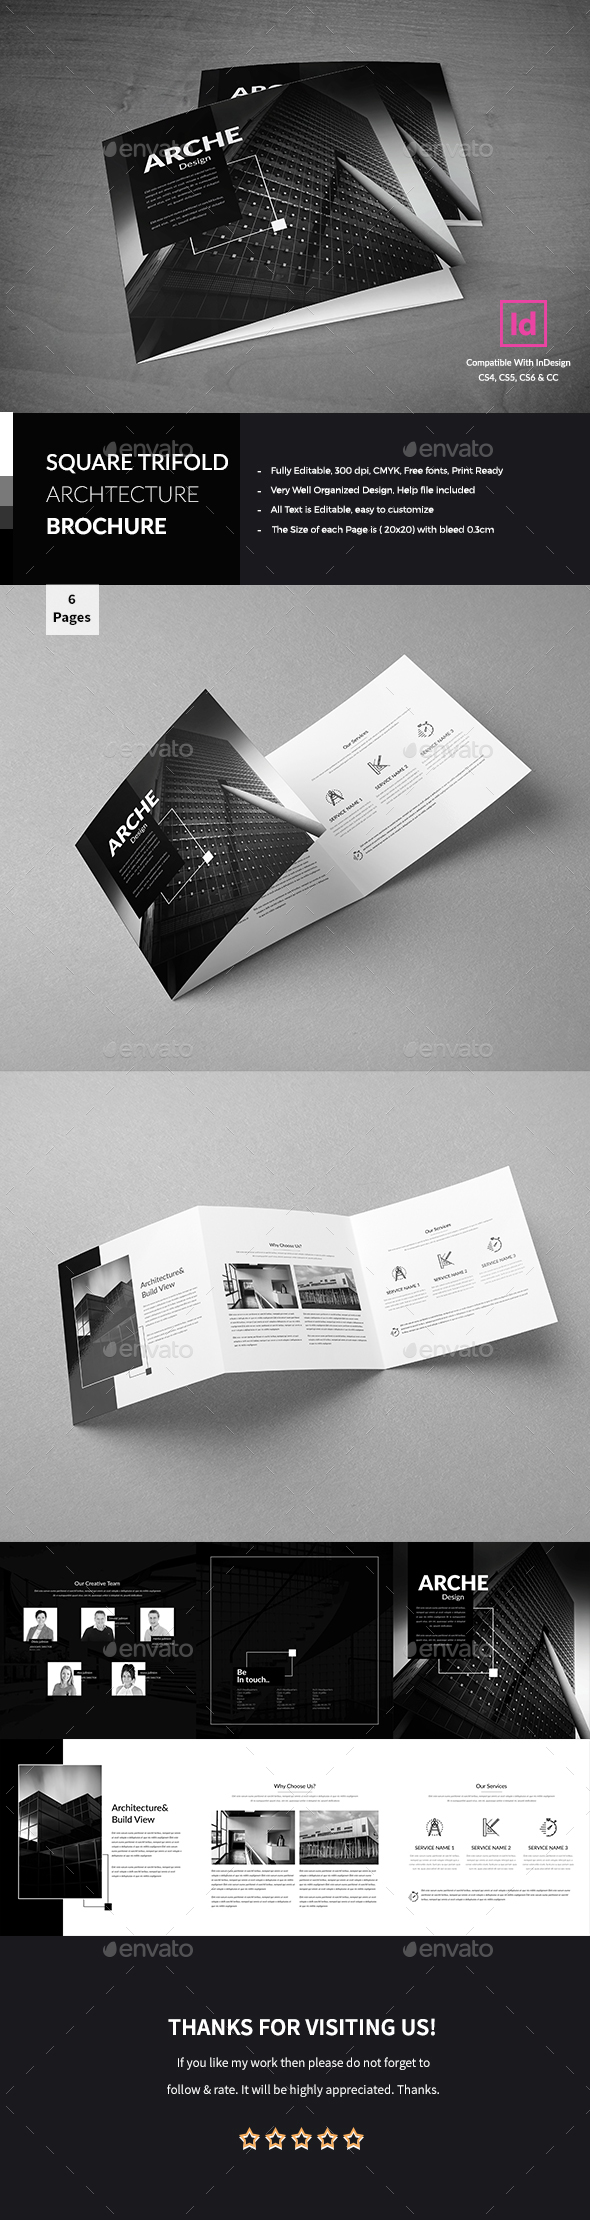 Architecture Square Trifold Brochure - Corporate Brochures